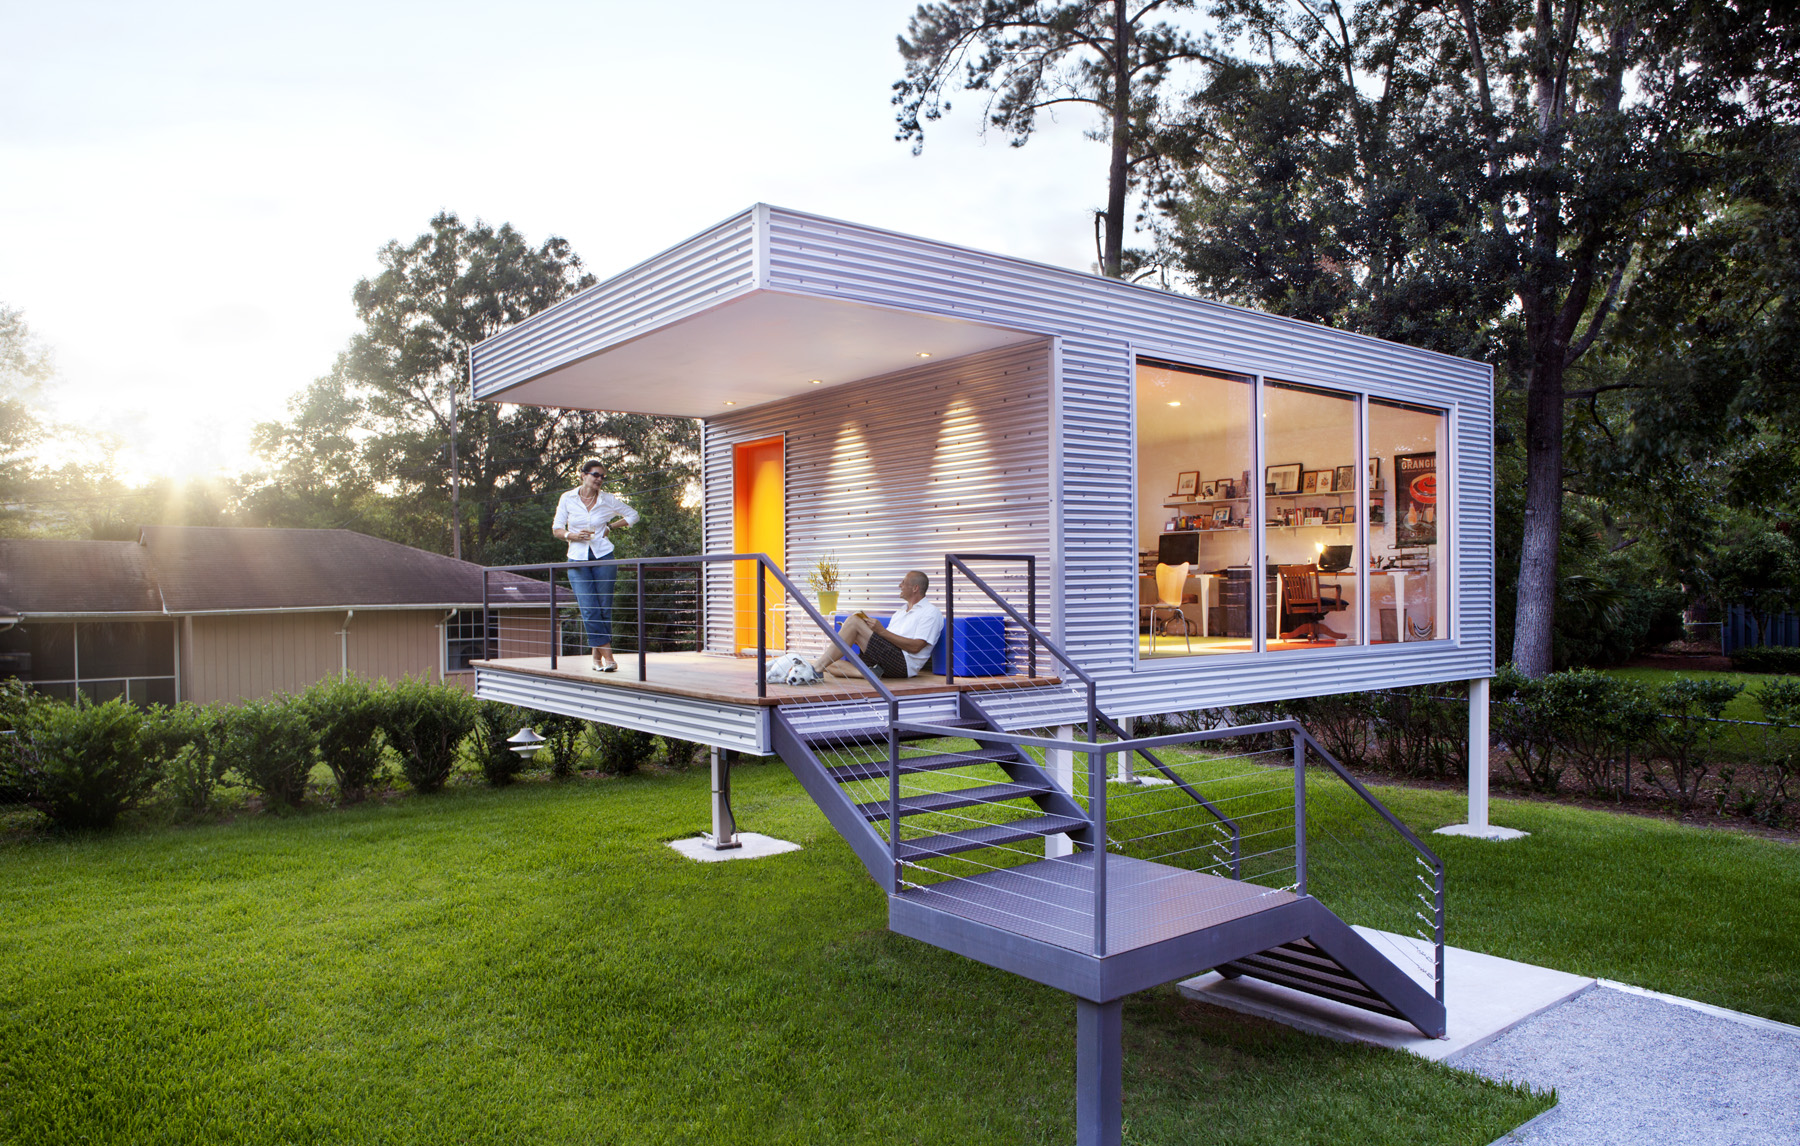 In Savannah the Suburban Think Tank Architects and Artisans